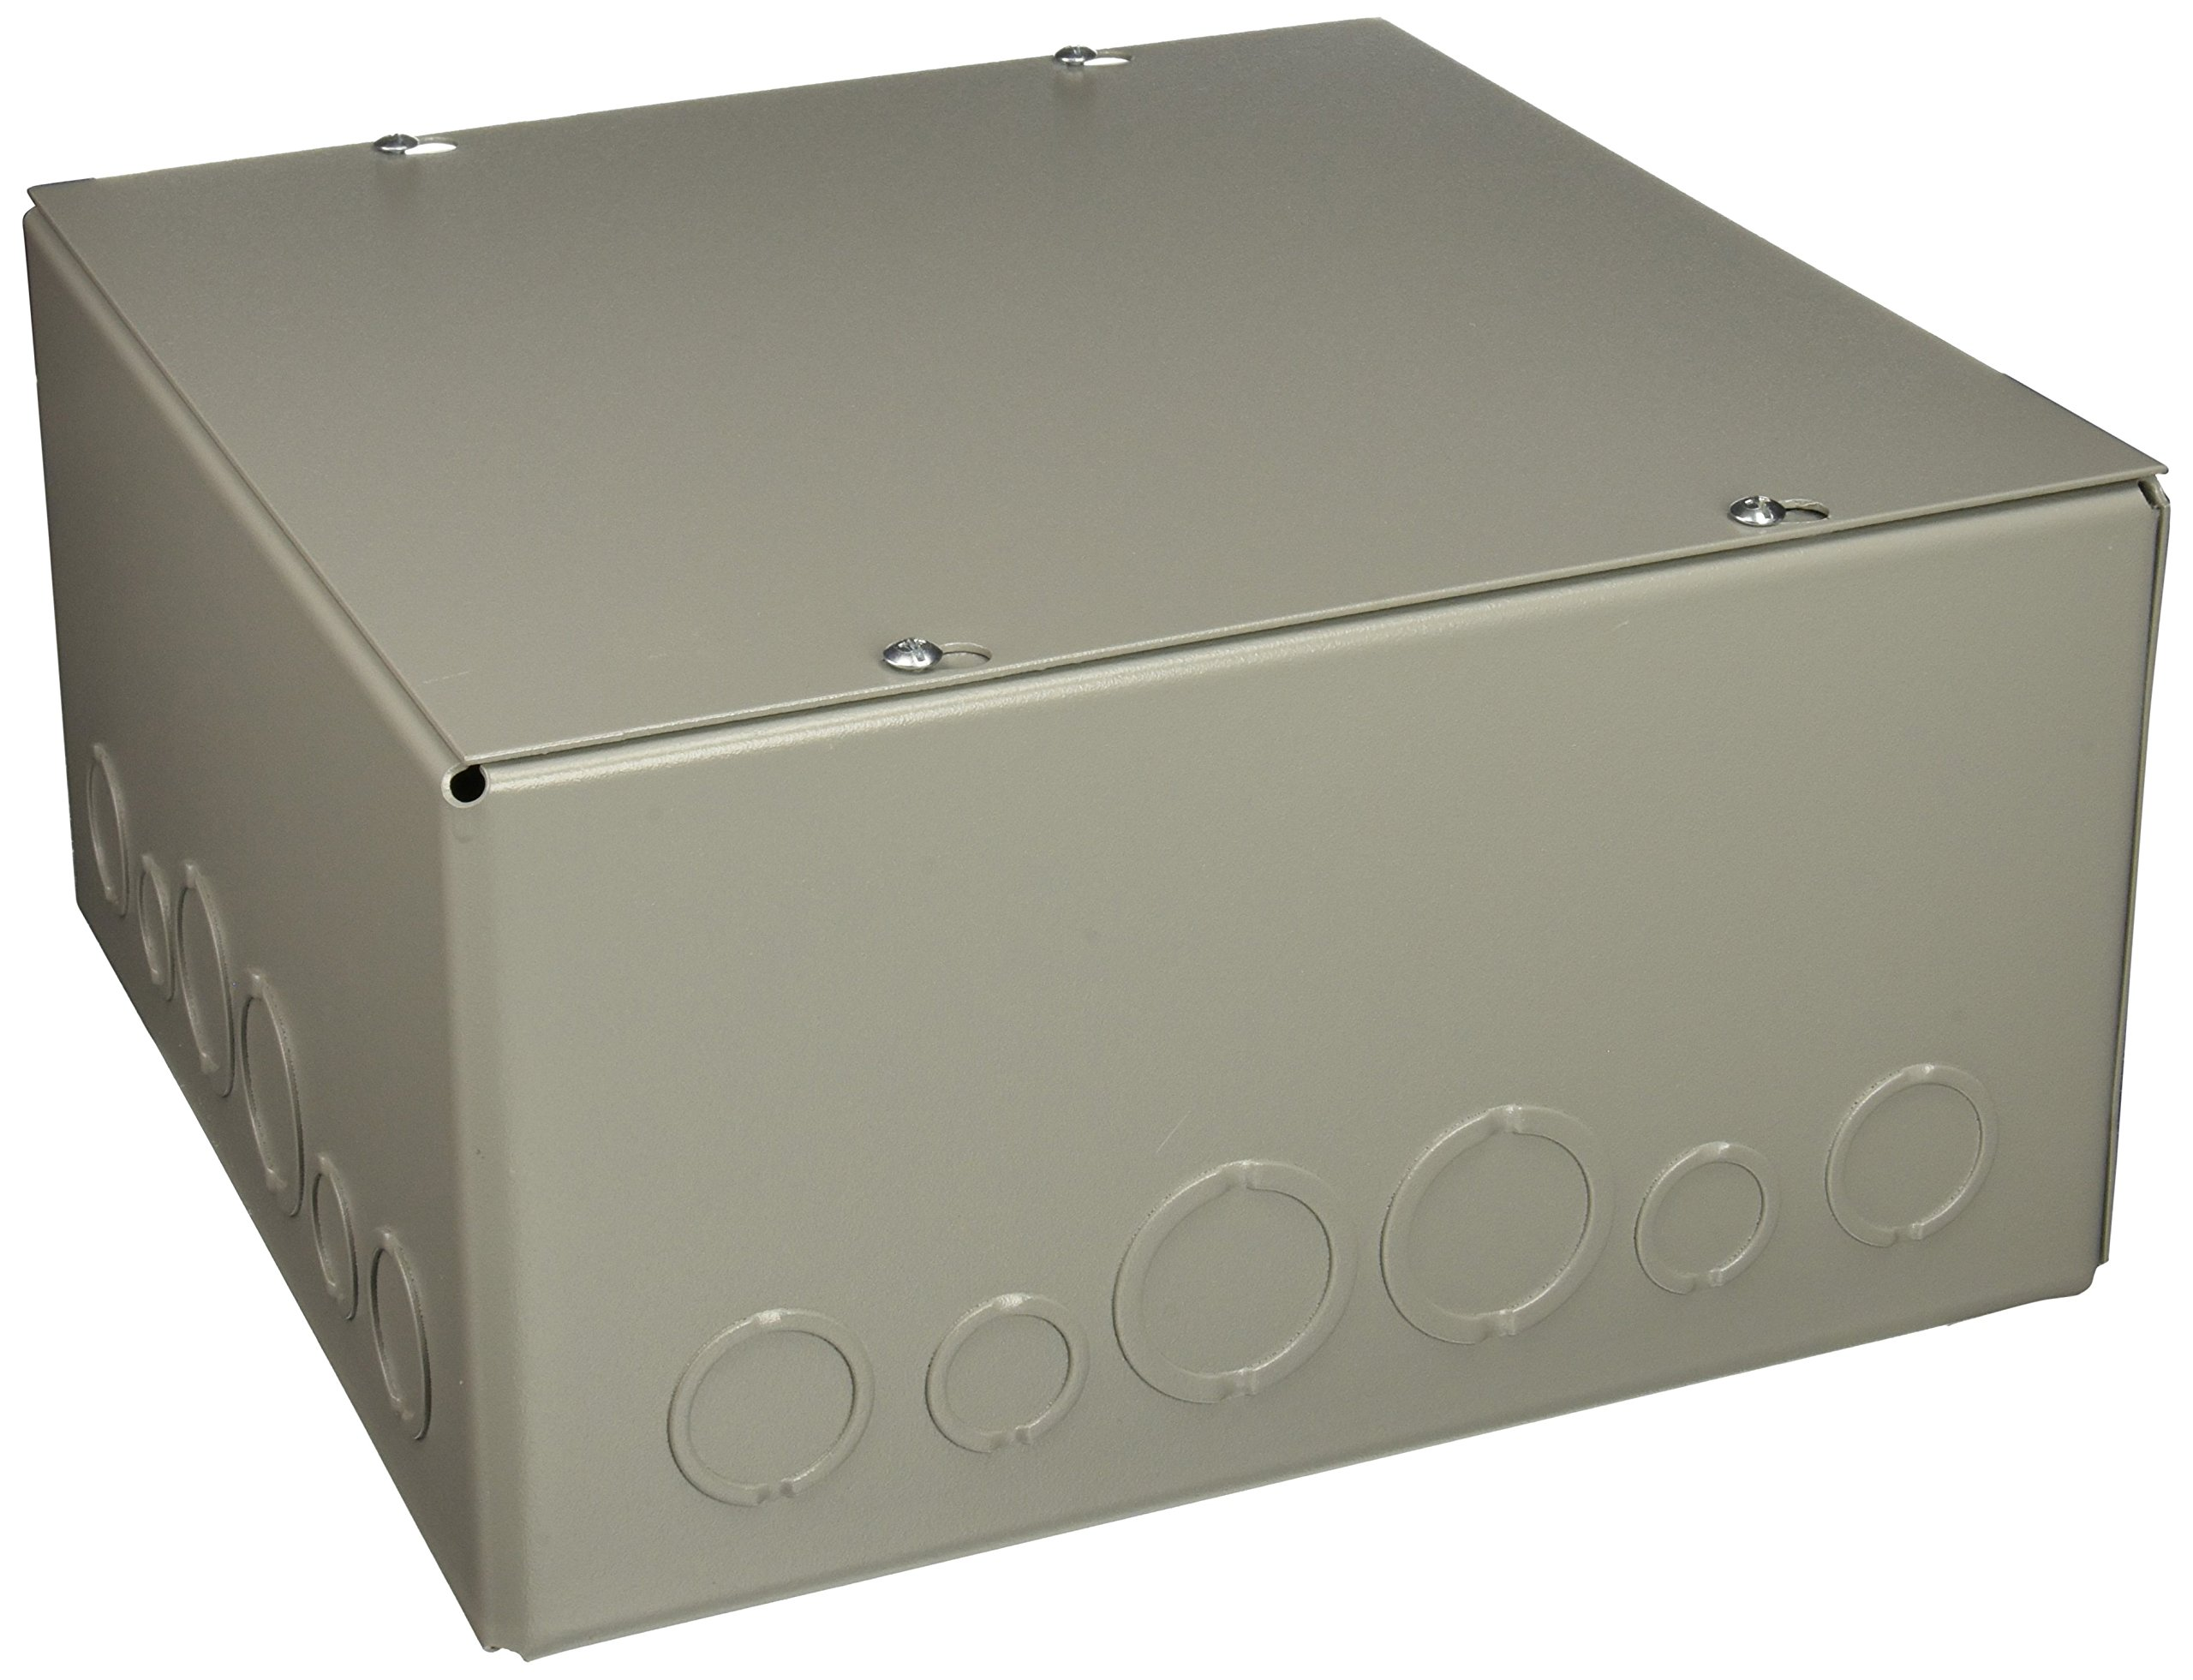 Wiegmann SC121206 SC-Series NEMA 1 Screw Cover Wallmount Pull Box with Knockouts, Painted Steel, 12'' x 12'' x 6''